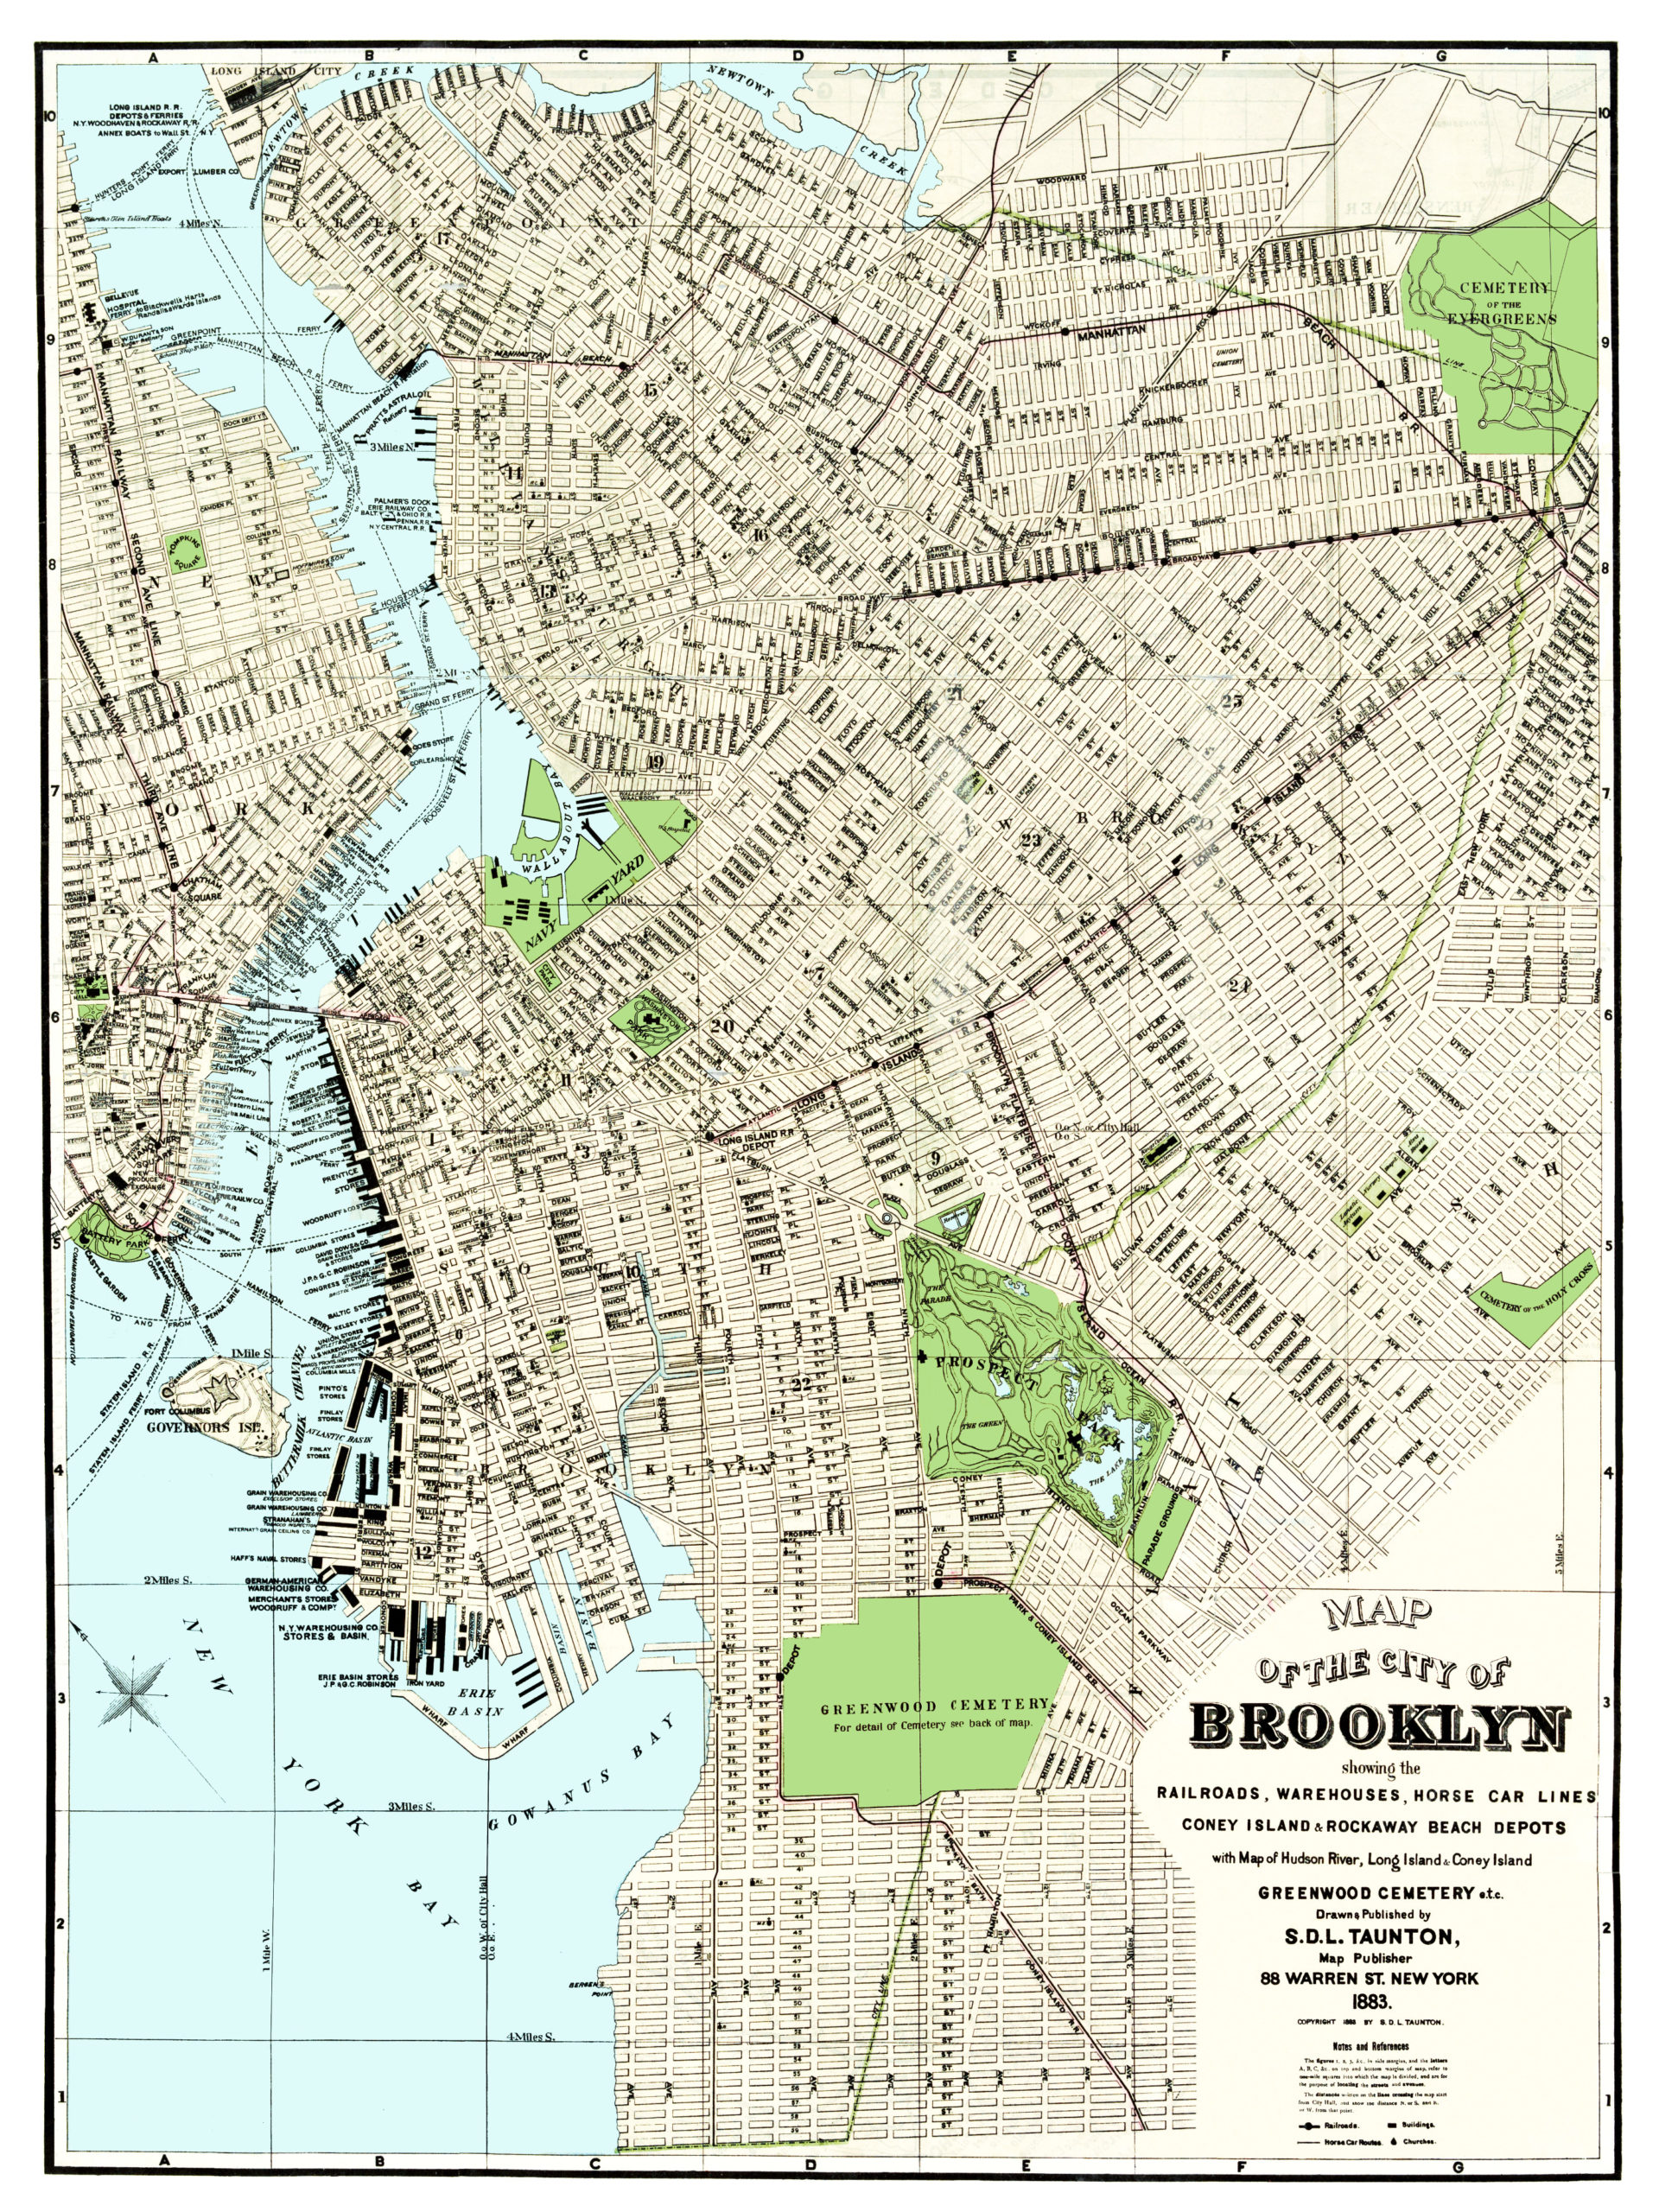 d6a8a69007d Vintage guide map and directory of Brooklyn from 1883 - KNOWOL